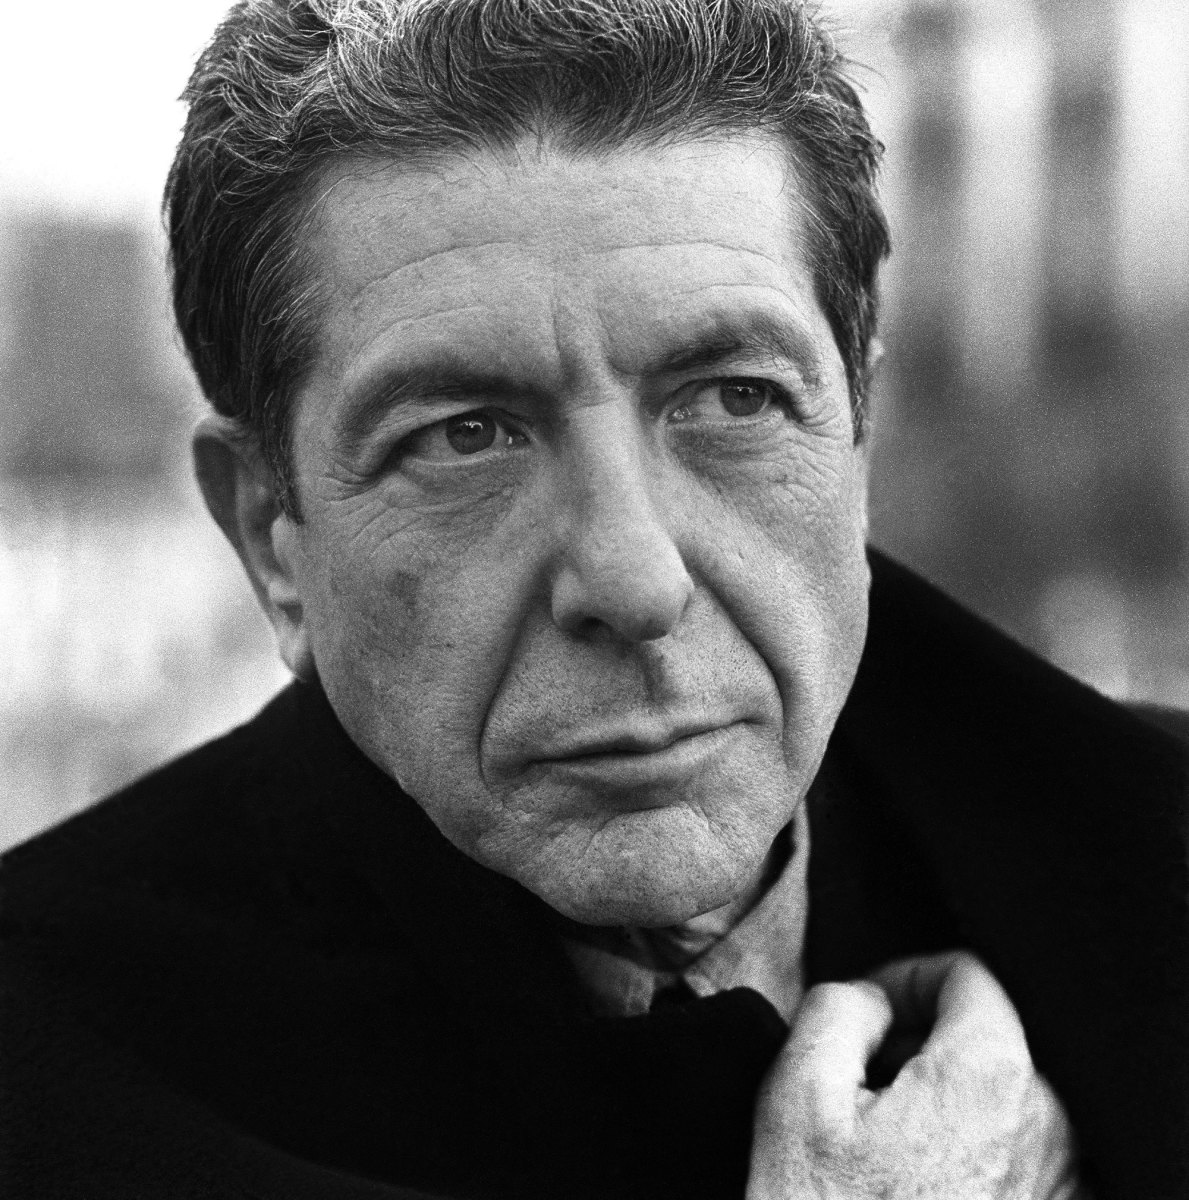 leonard cohen (black and white photo)